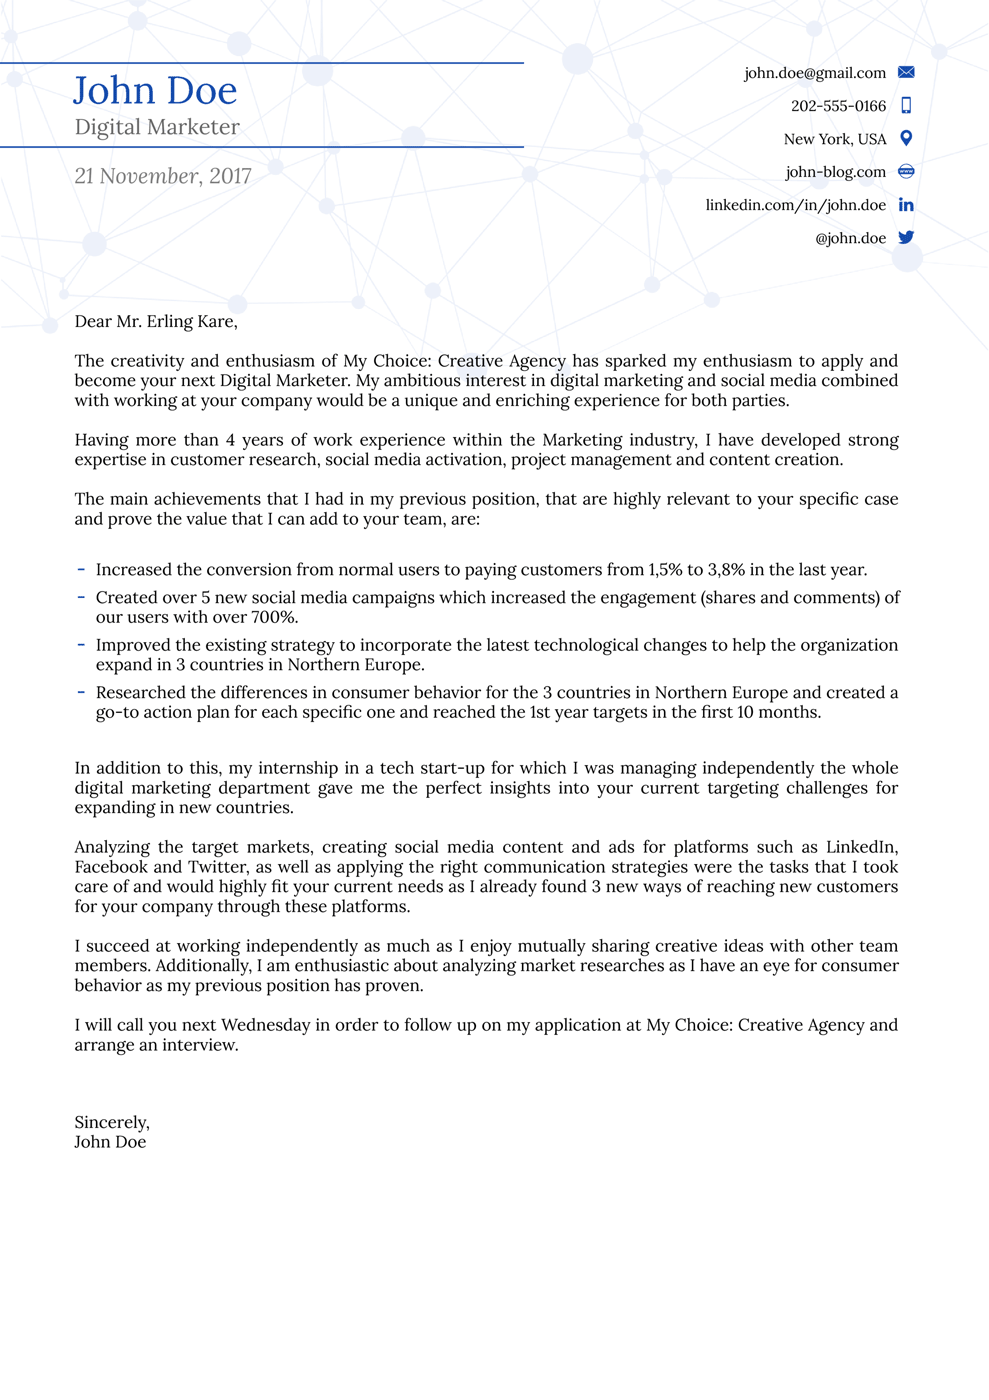 college cover letter template - Cover Letter To Company